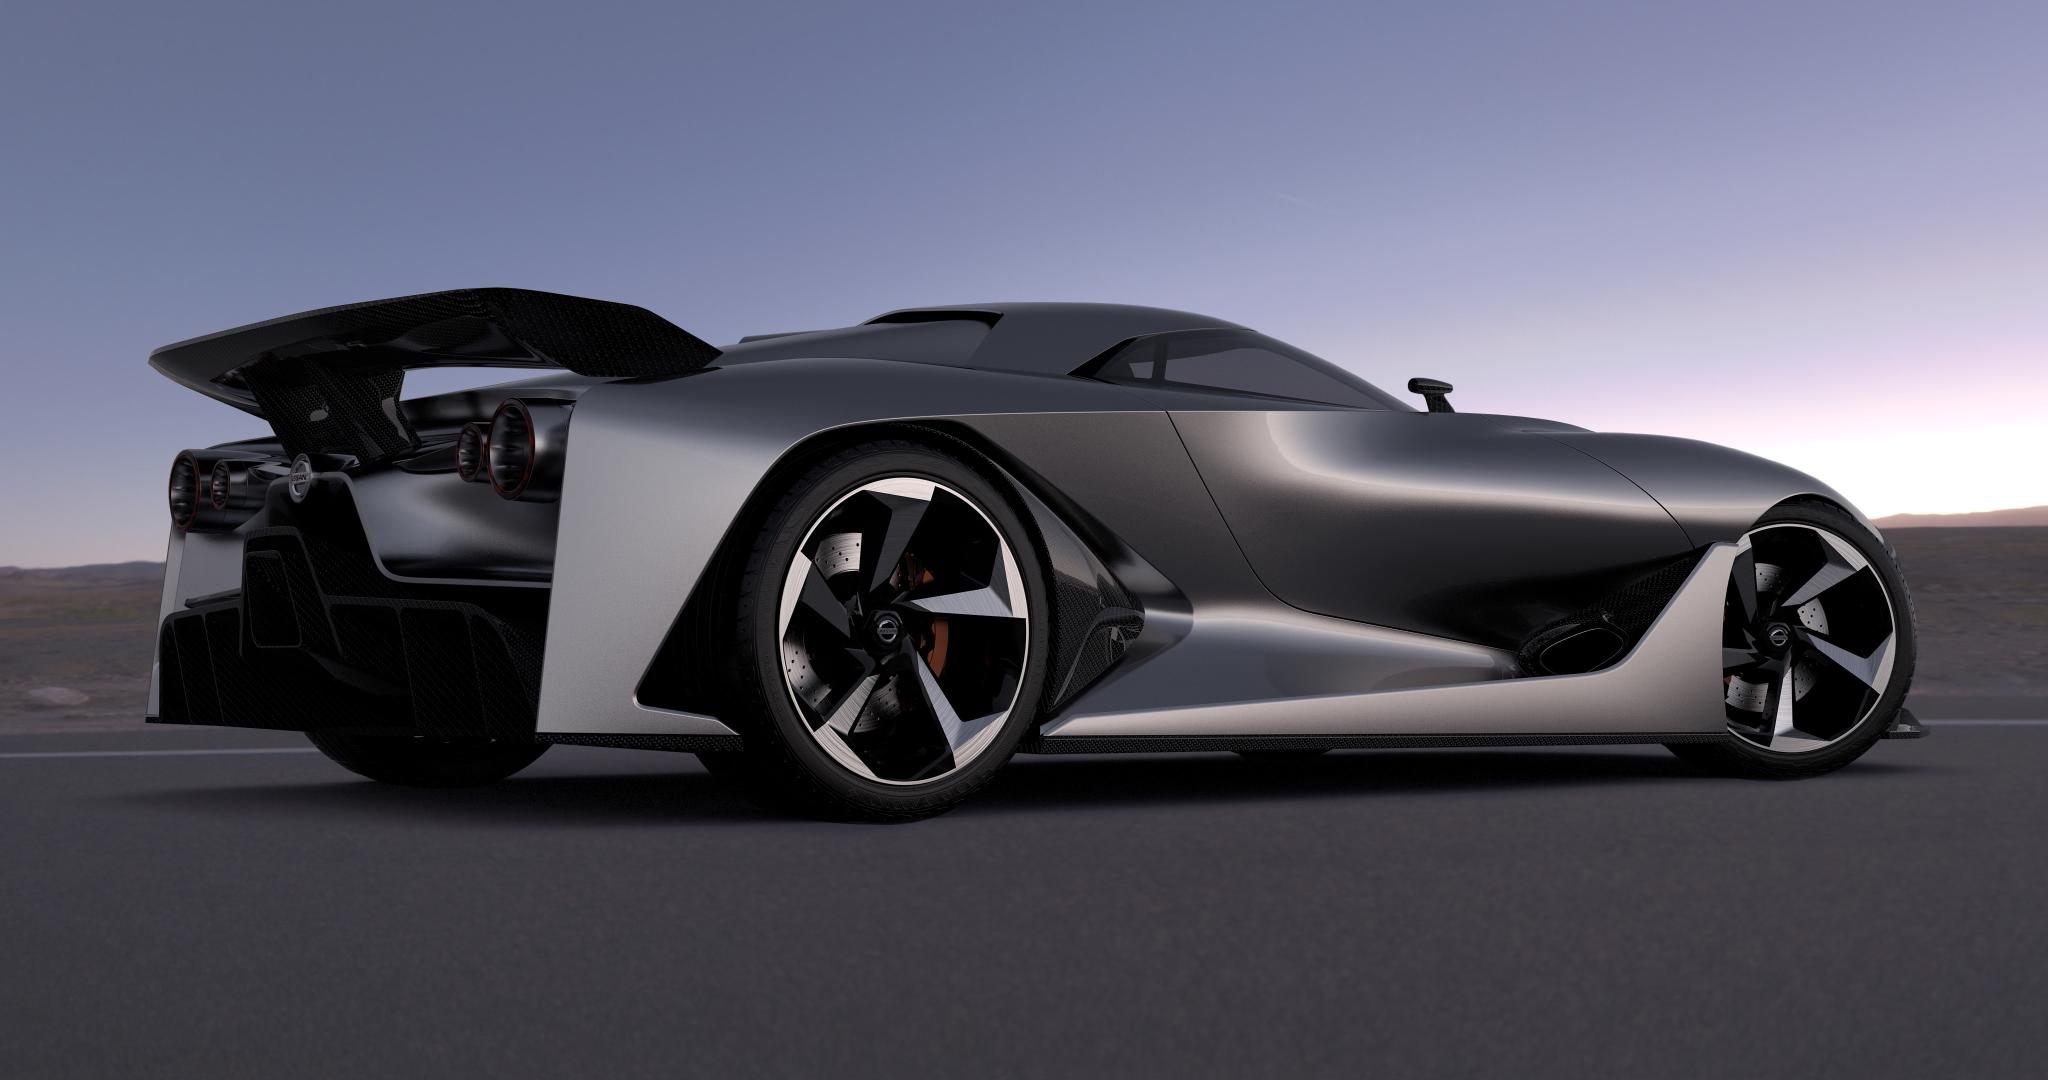 Nissan Reveals Future Supercar: Latest News